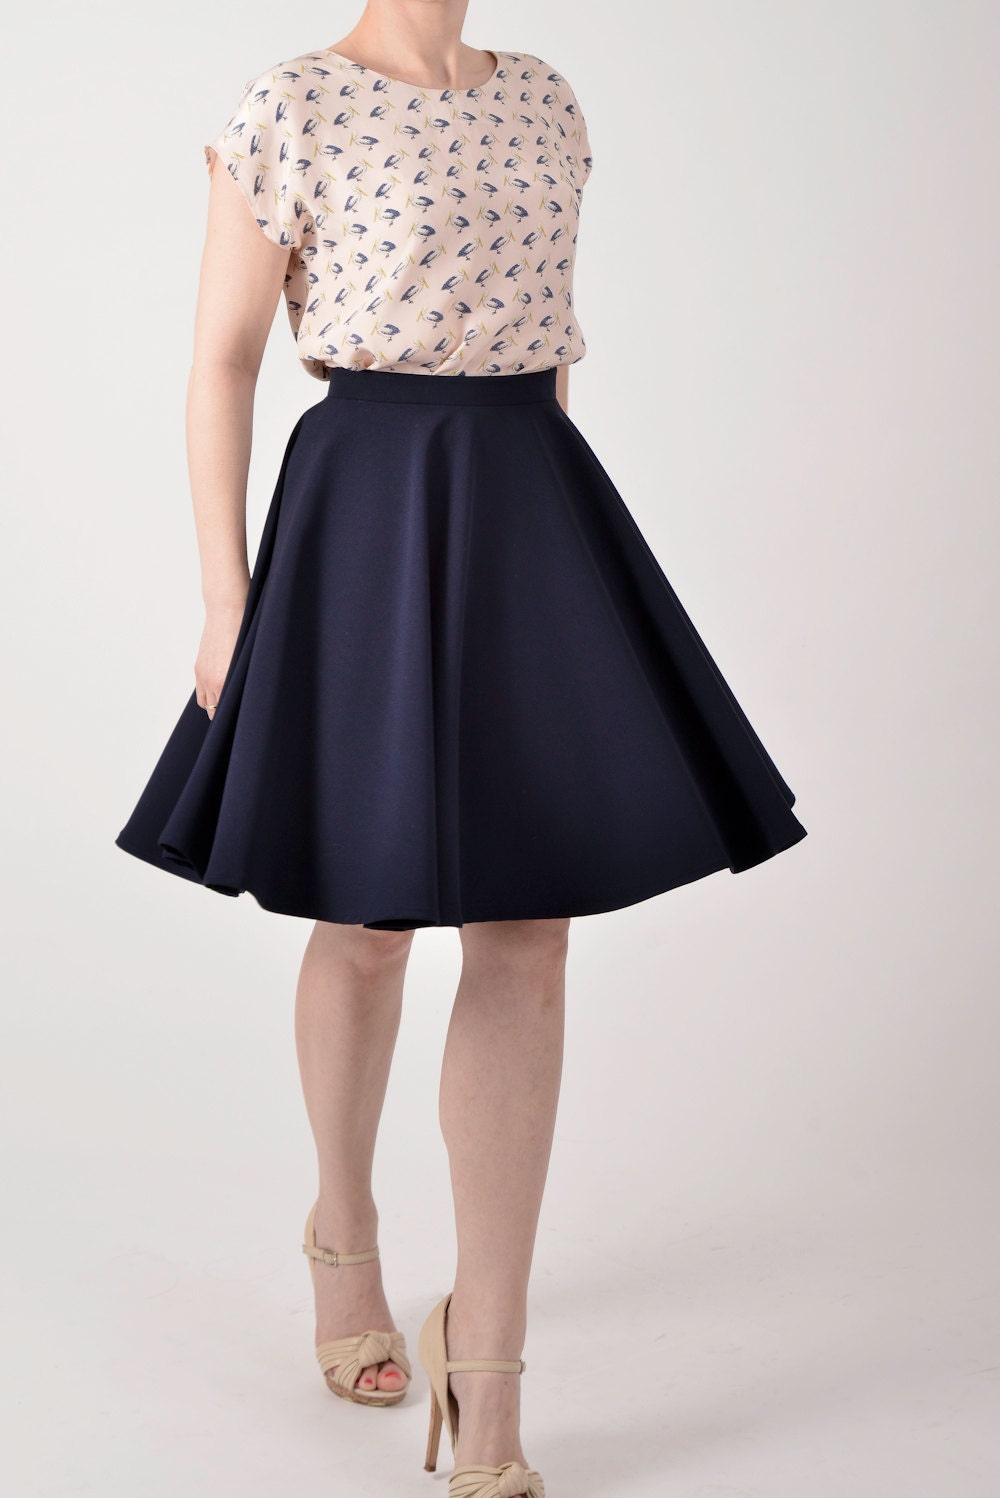 Long Skirts: Free Shipping on orders over $45 at coolmfilehj.cf - Your Online Skirts Store! Get 5% in rewards with Club O!